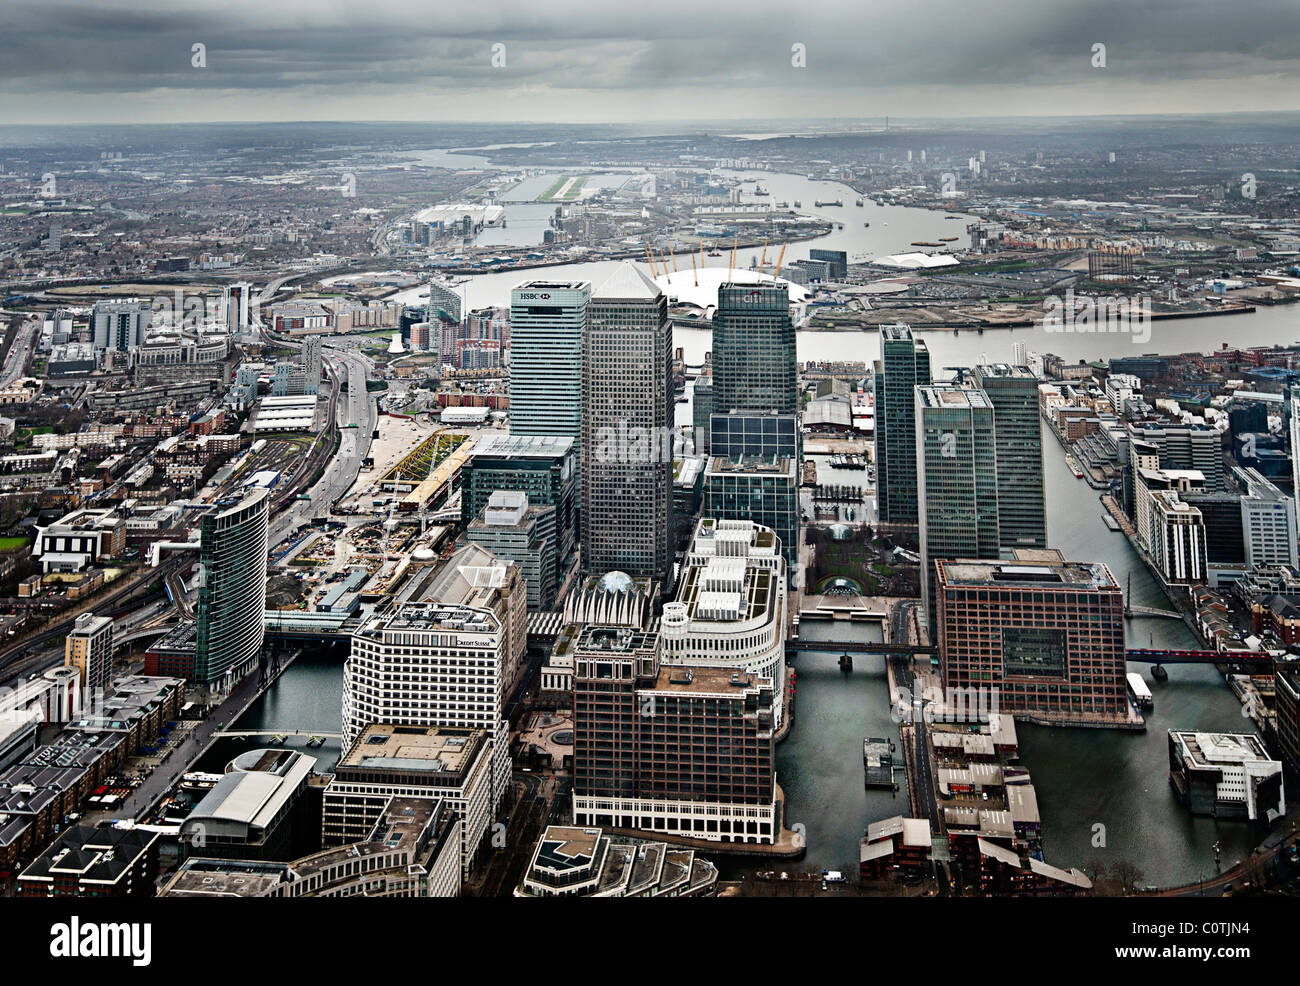 Aerial Shot of the Canary Wharf Estate in London, Greater London - Stock Image